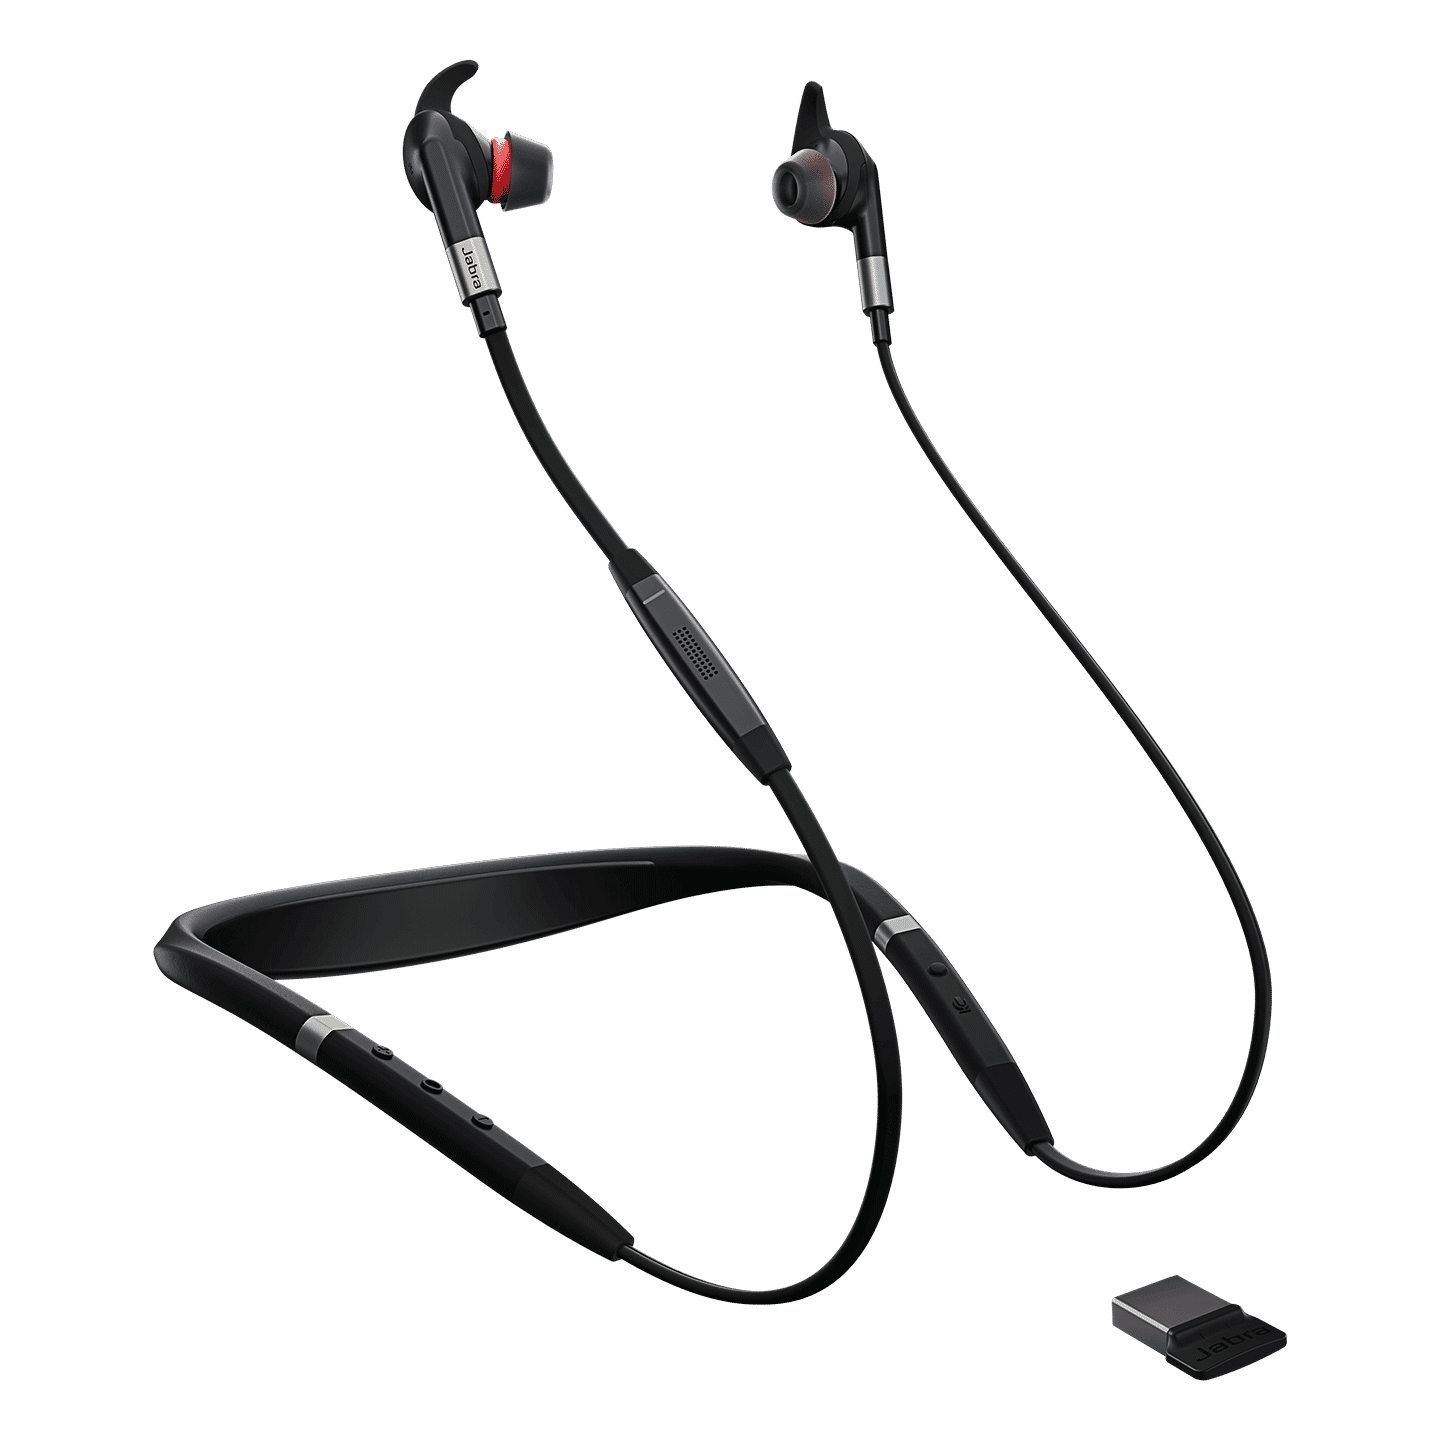 best-neckband-bluetooth-headphones-jabra-evolve-75e-wireless-stereo